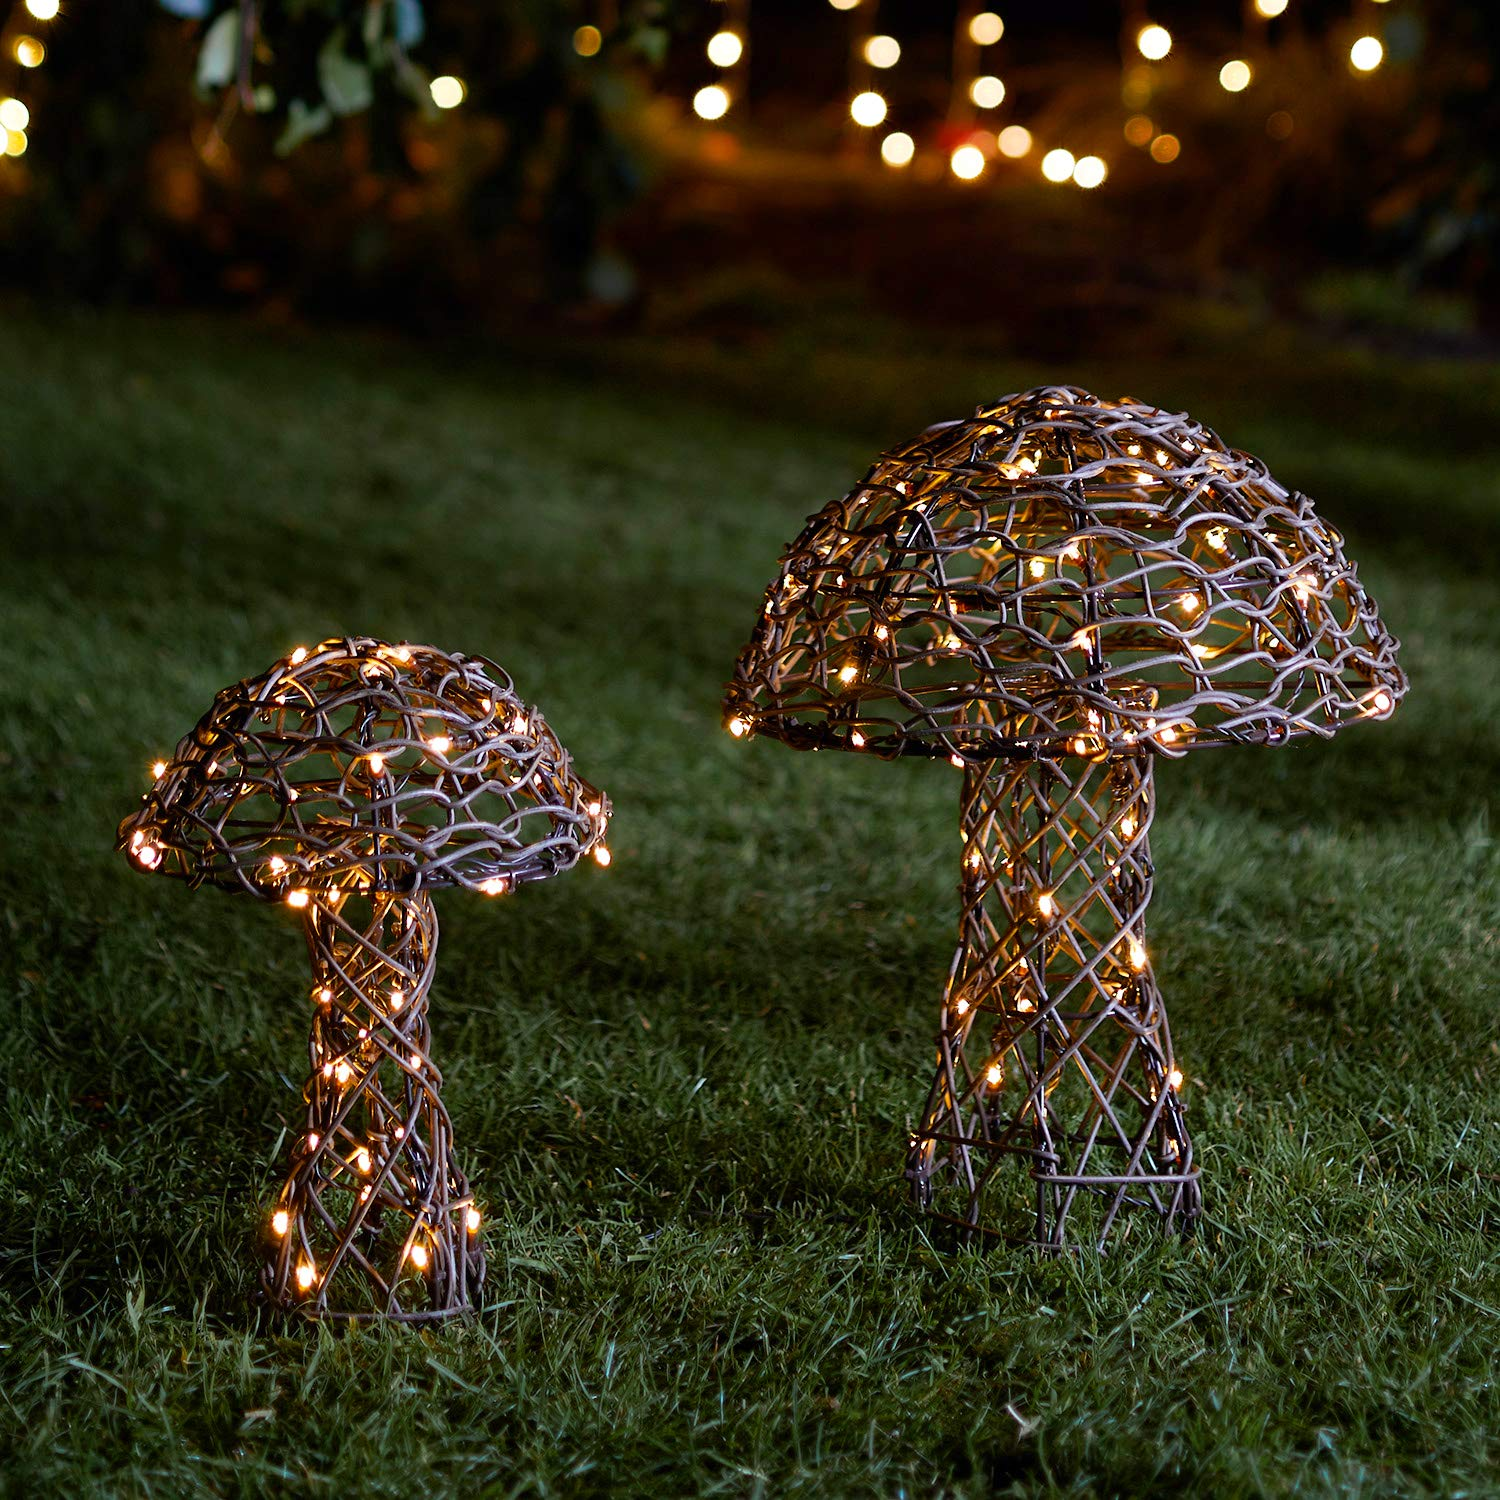 Lights4fun, Inc. Set of 2 Rattan Toadstool Mushroom Outdoor Battery Operated LED Light Up Decorations